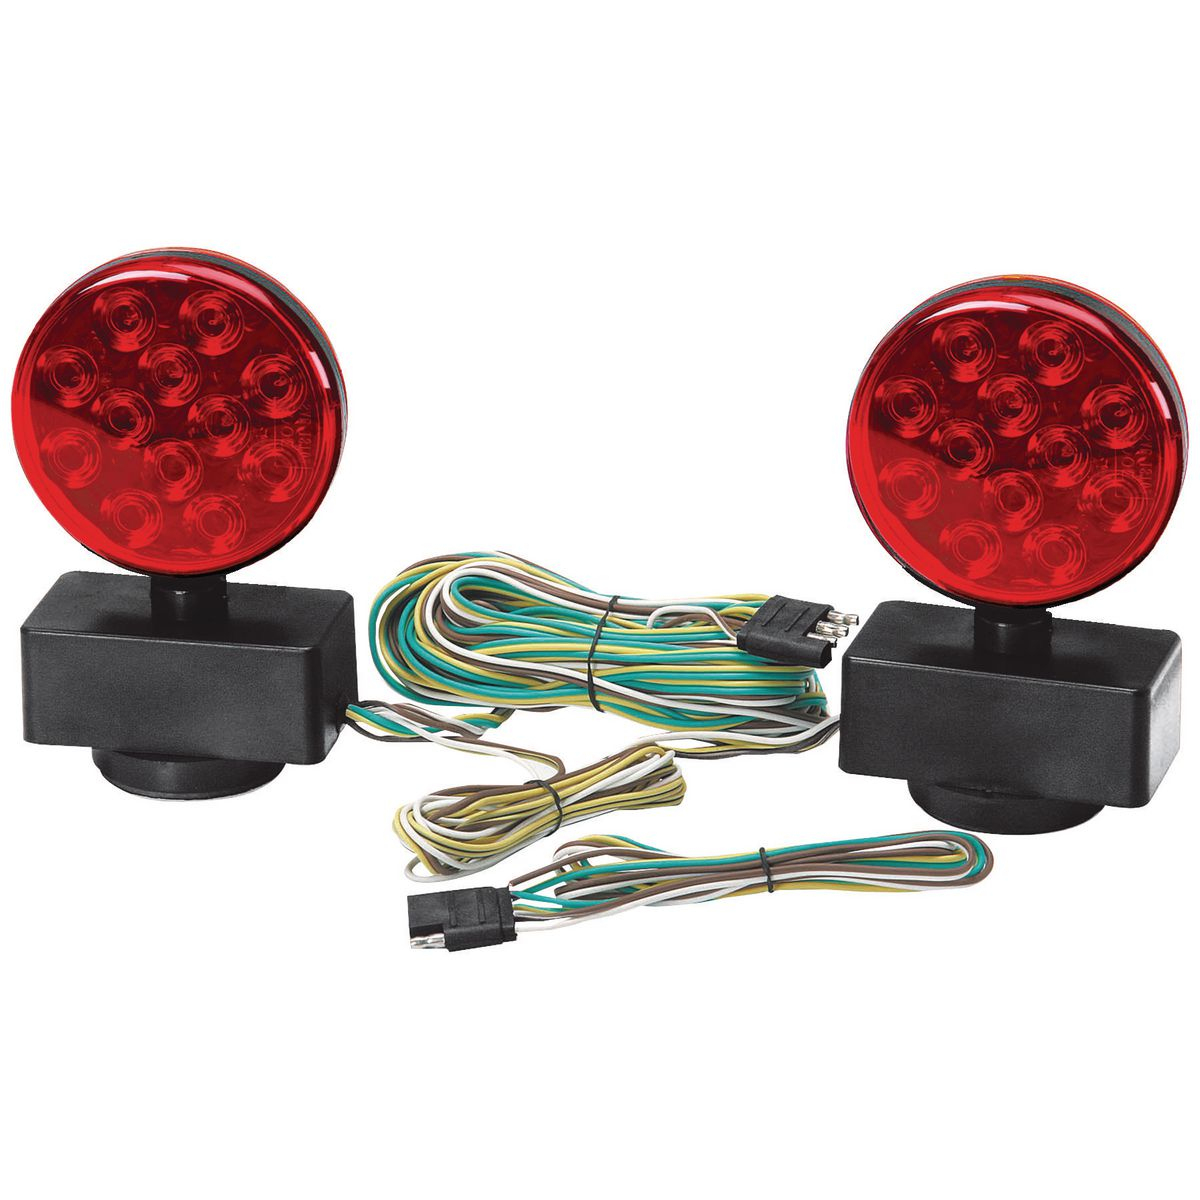 12 Volt Magnetic Led Towing Light Kit - Harbor Freight Trailer Light Kit Wiring Diagram